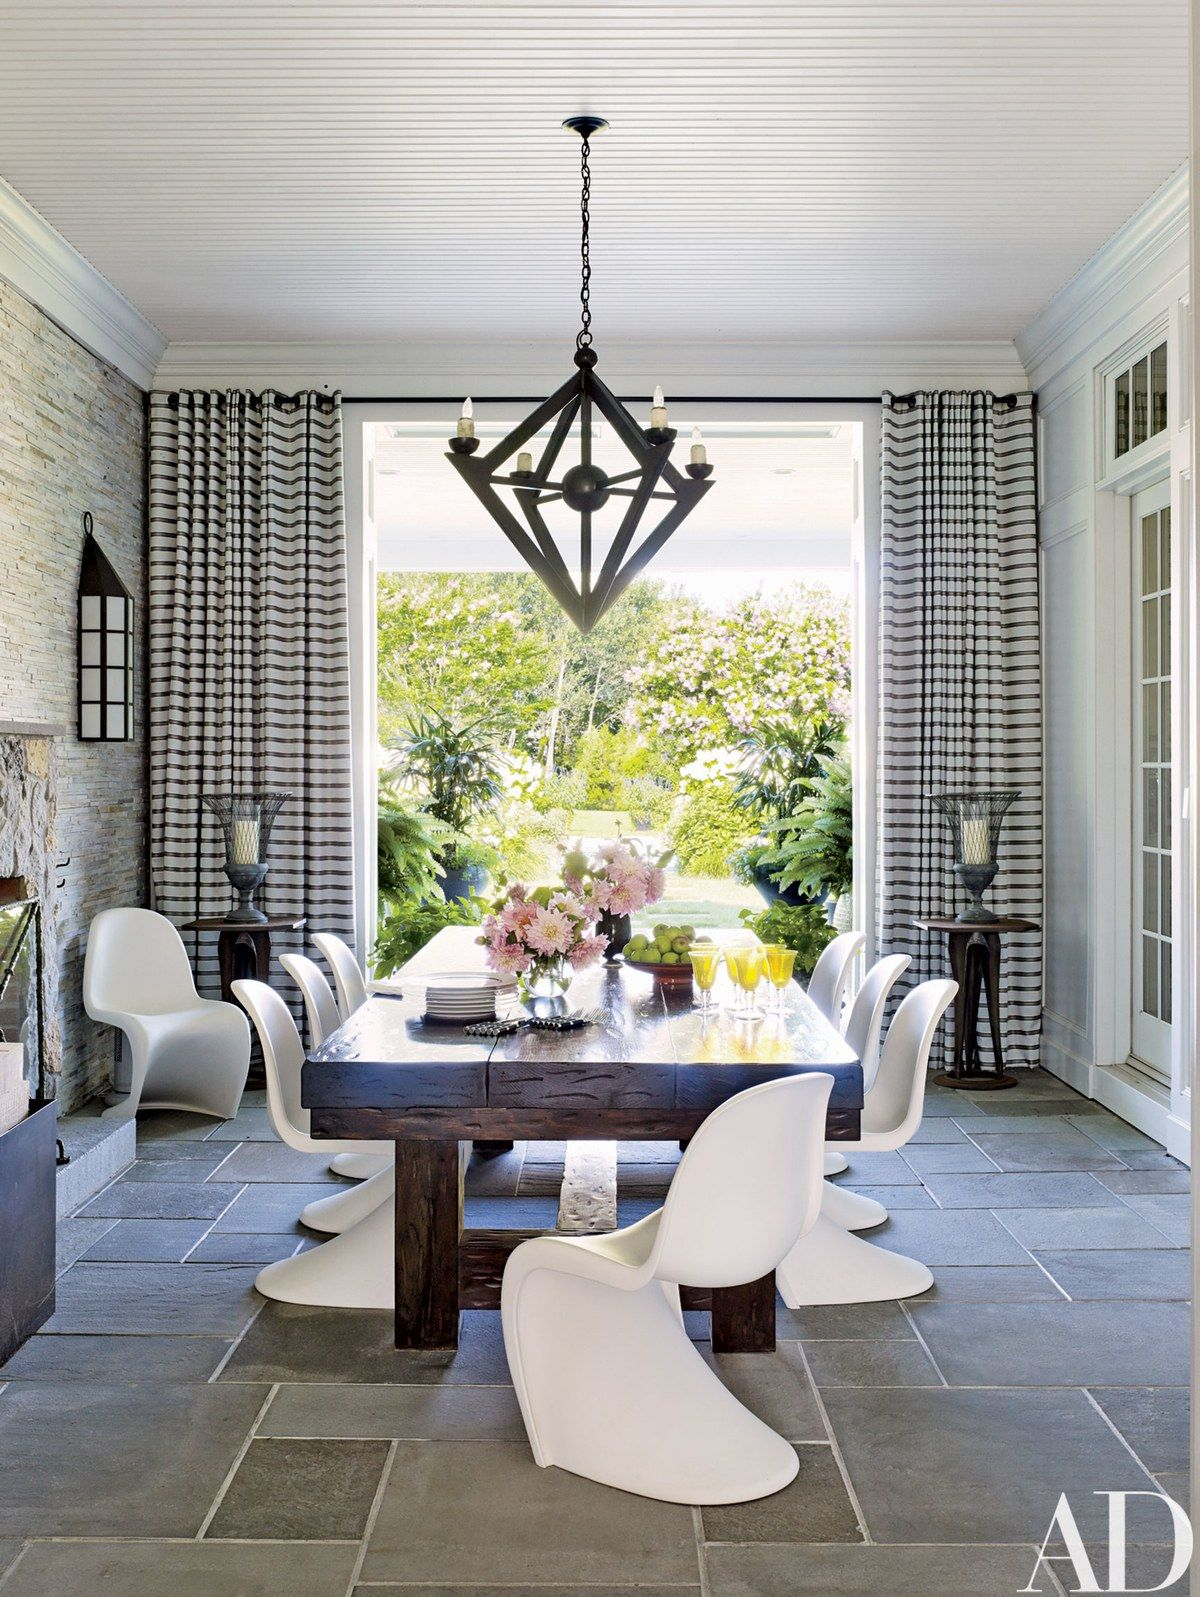 Verner Panton Chairs By Vitra Join A Chandelier Jerry Pair On An Enclosed Porch